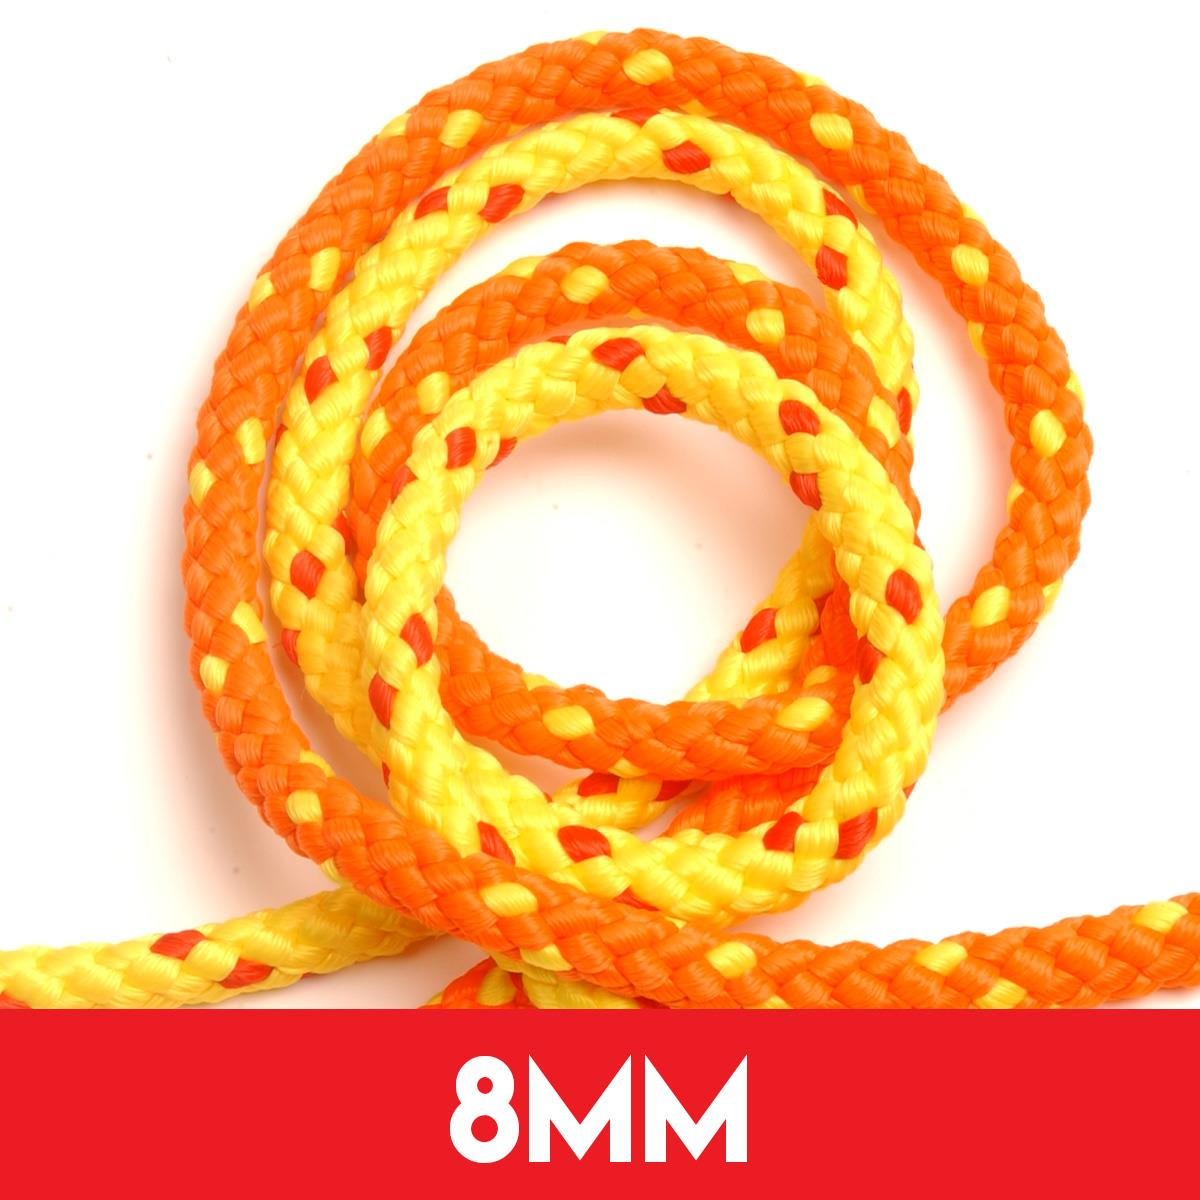 8mm Floatline Tow Rope